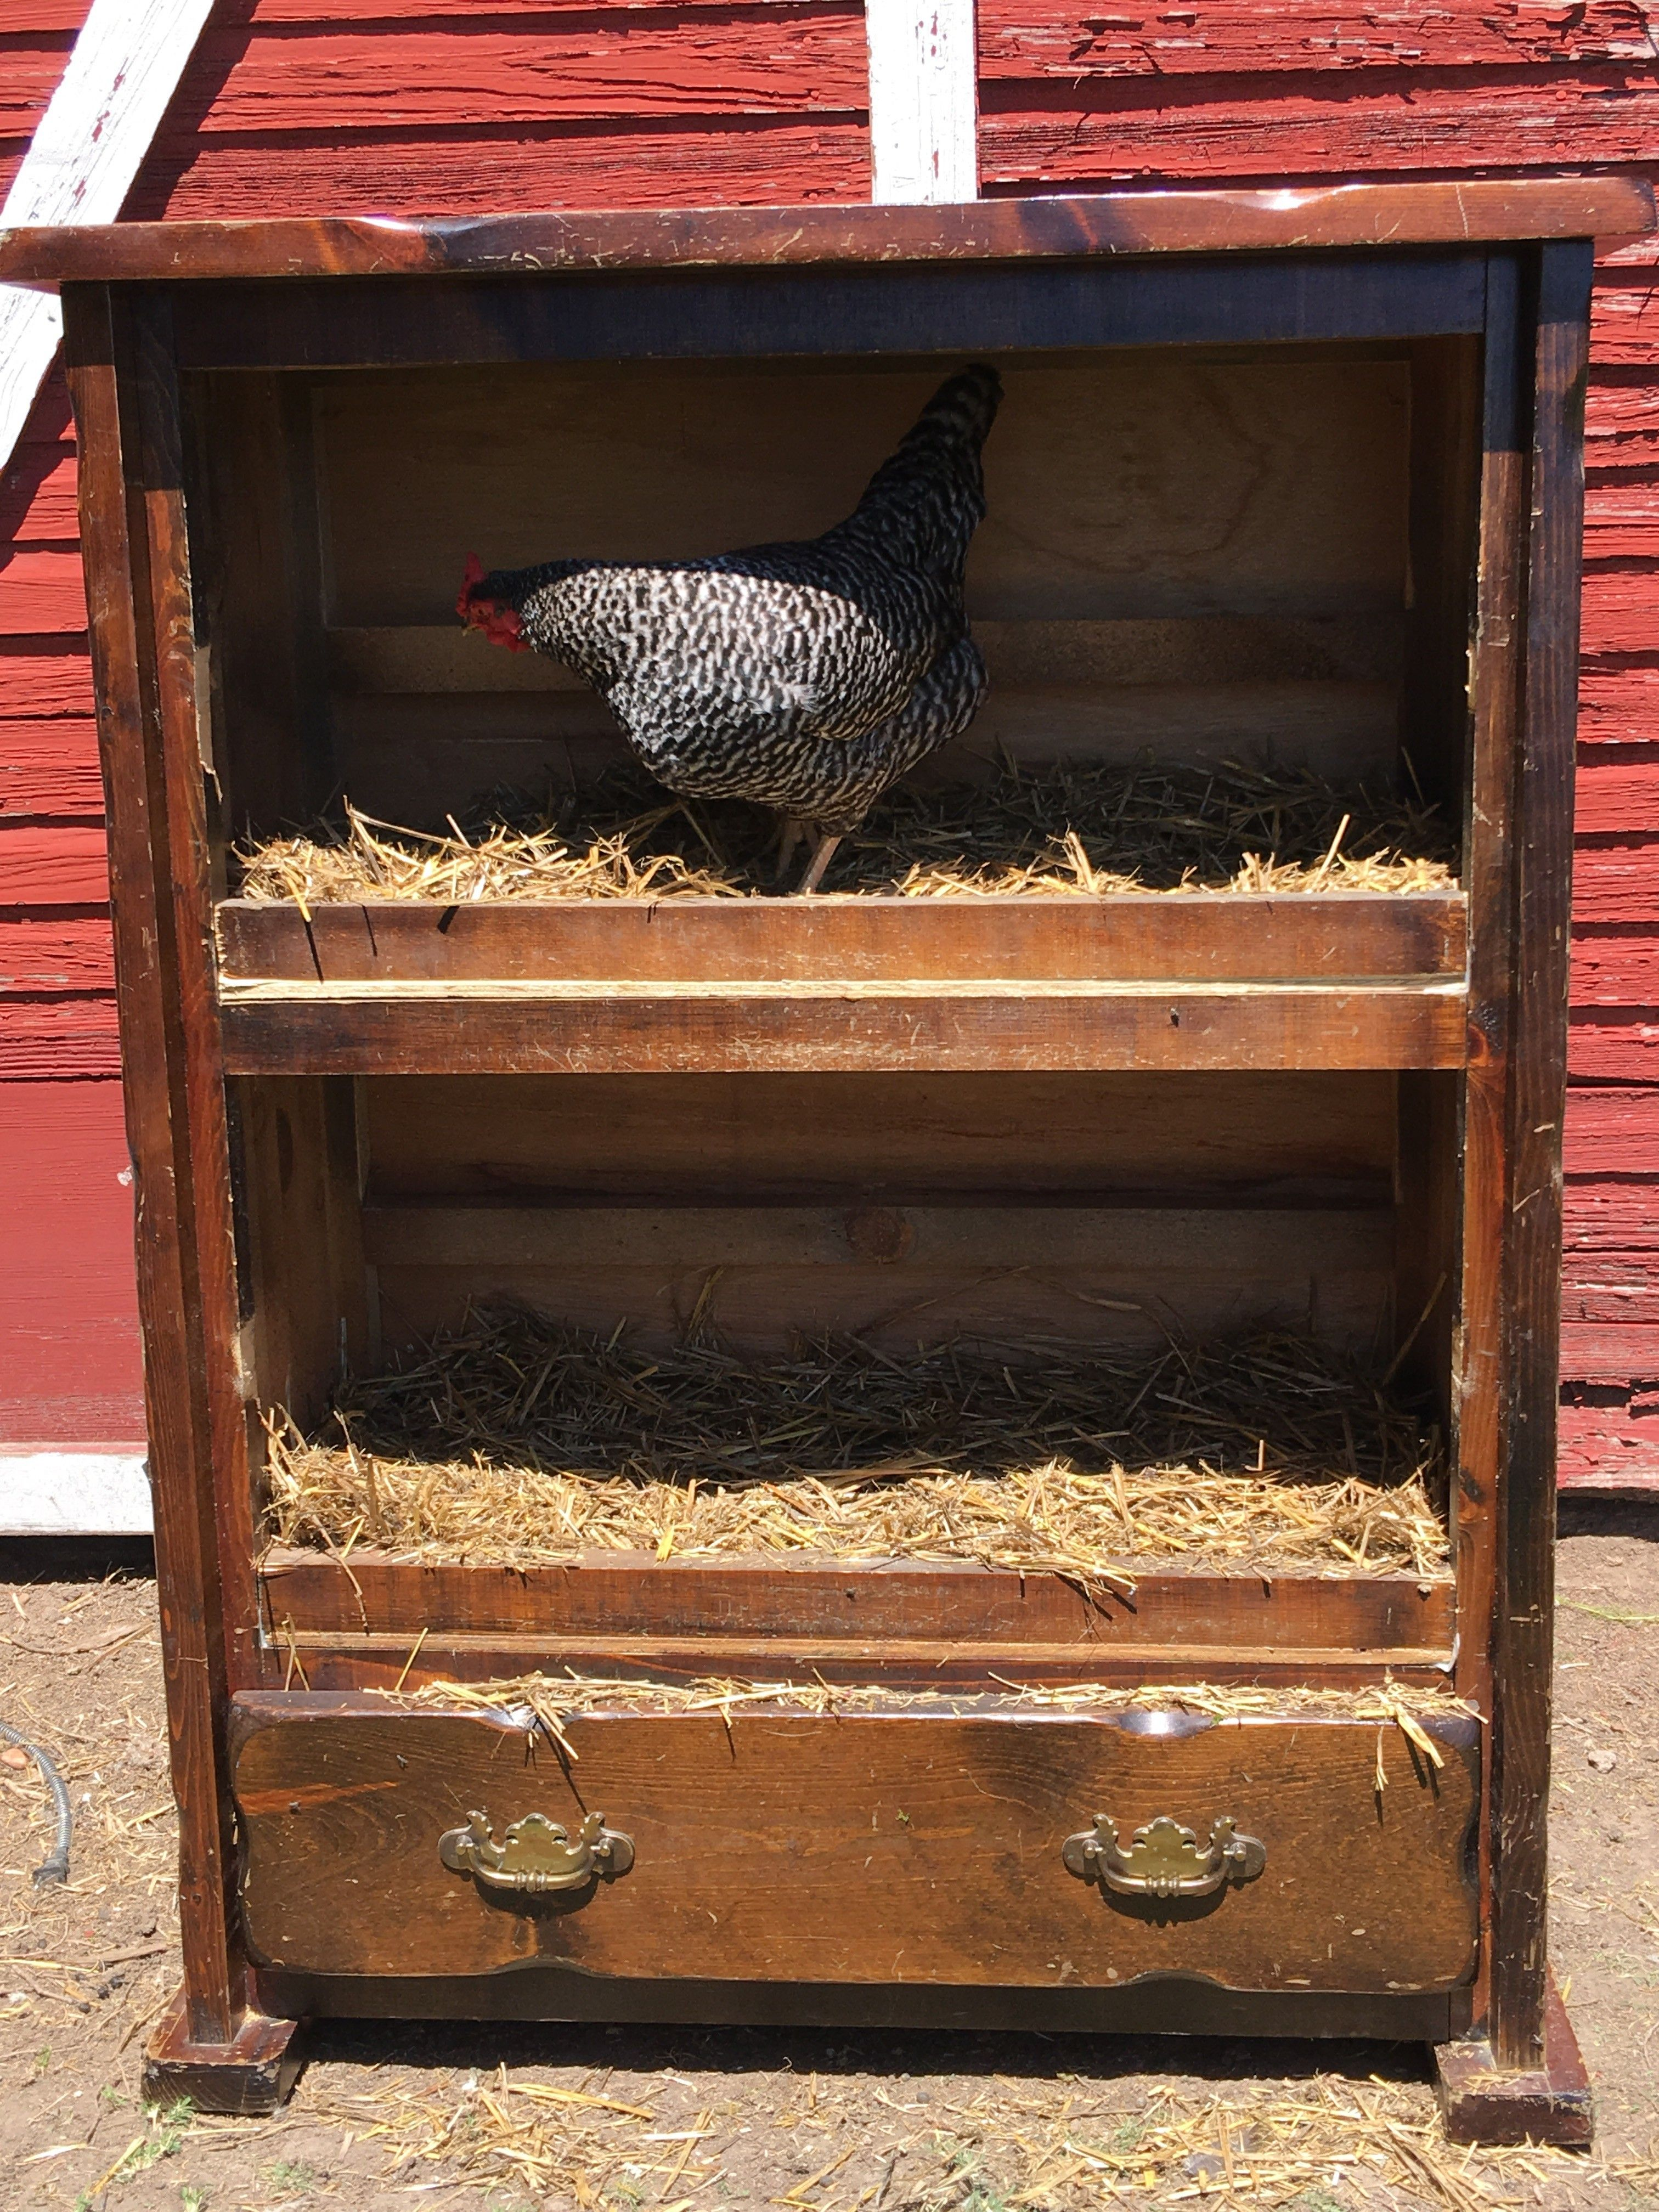 Hello Nesting box. Goodbye old ugly dated furniture. Upcycling for the farm life!